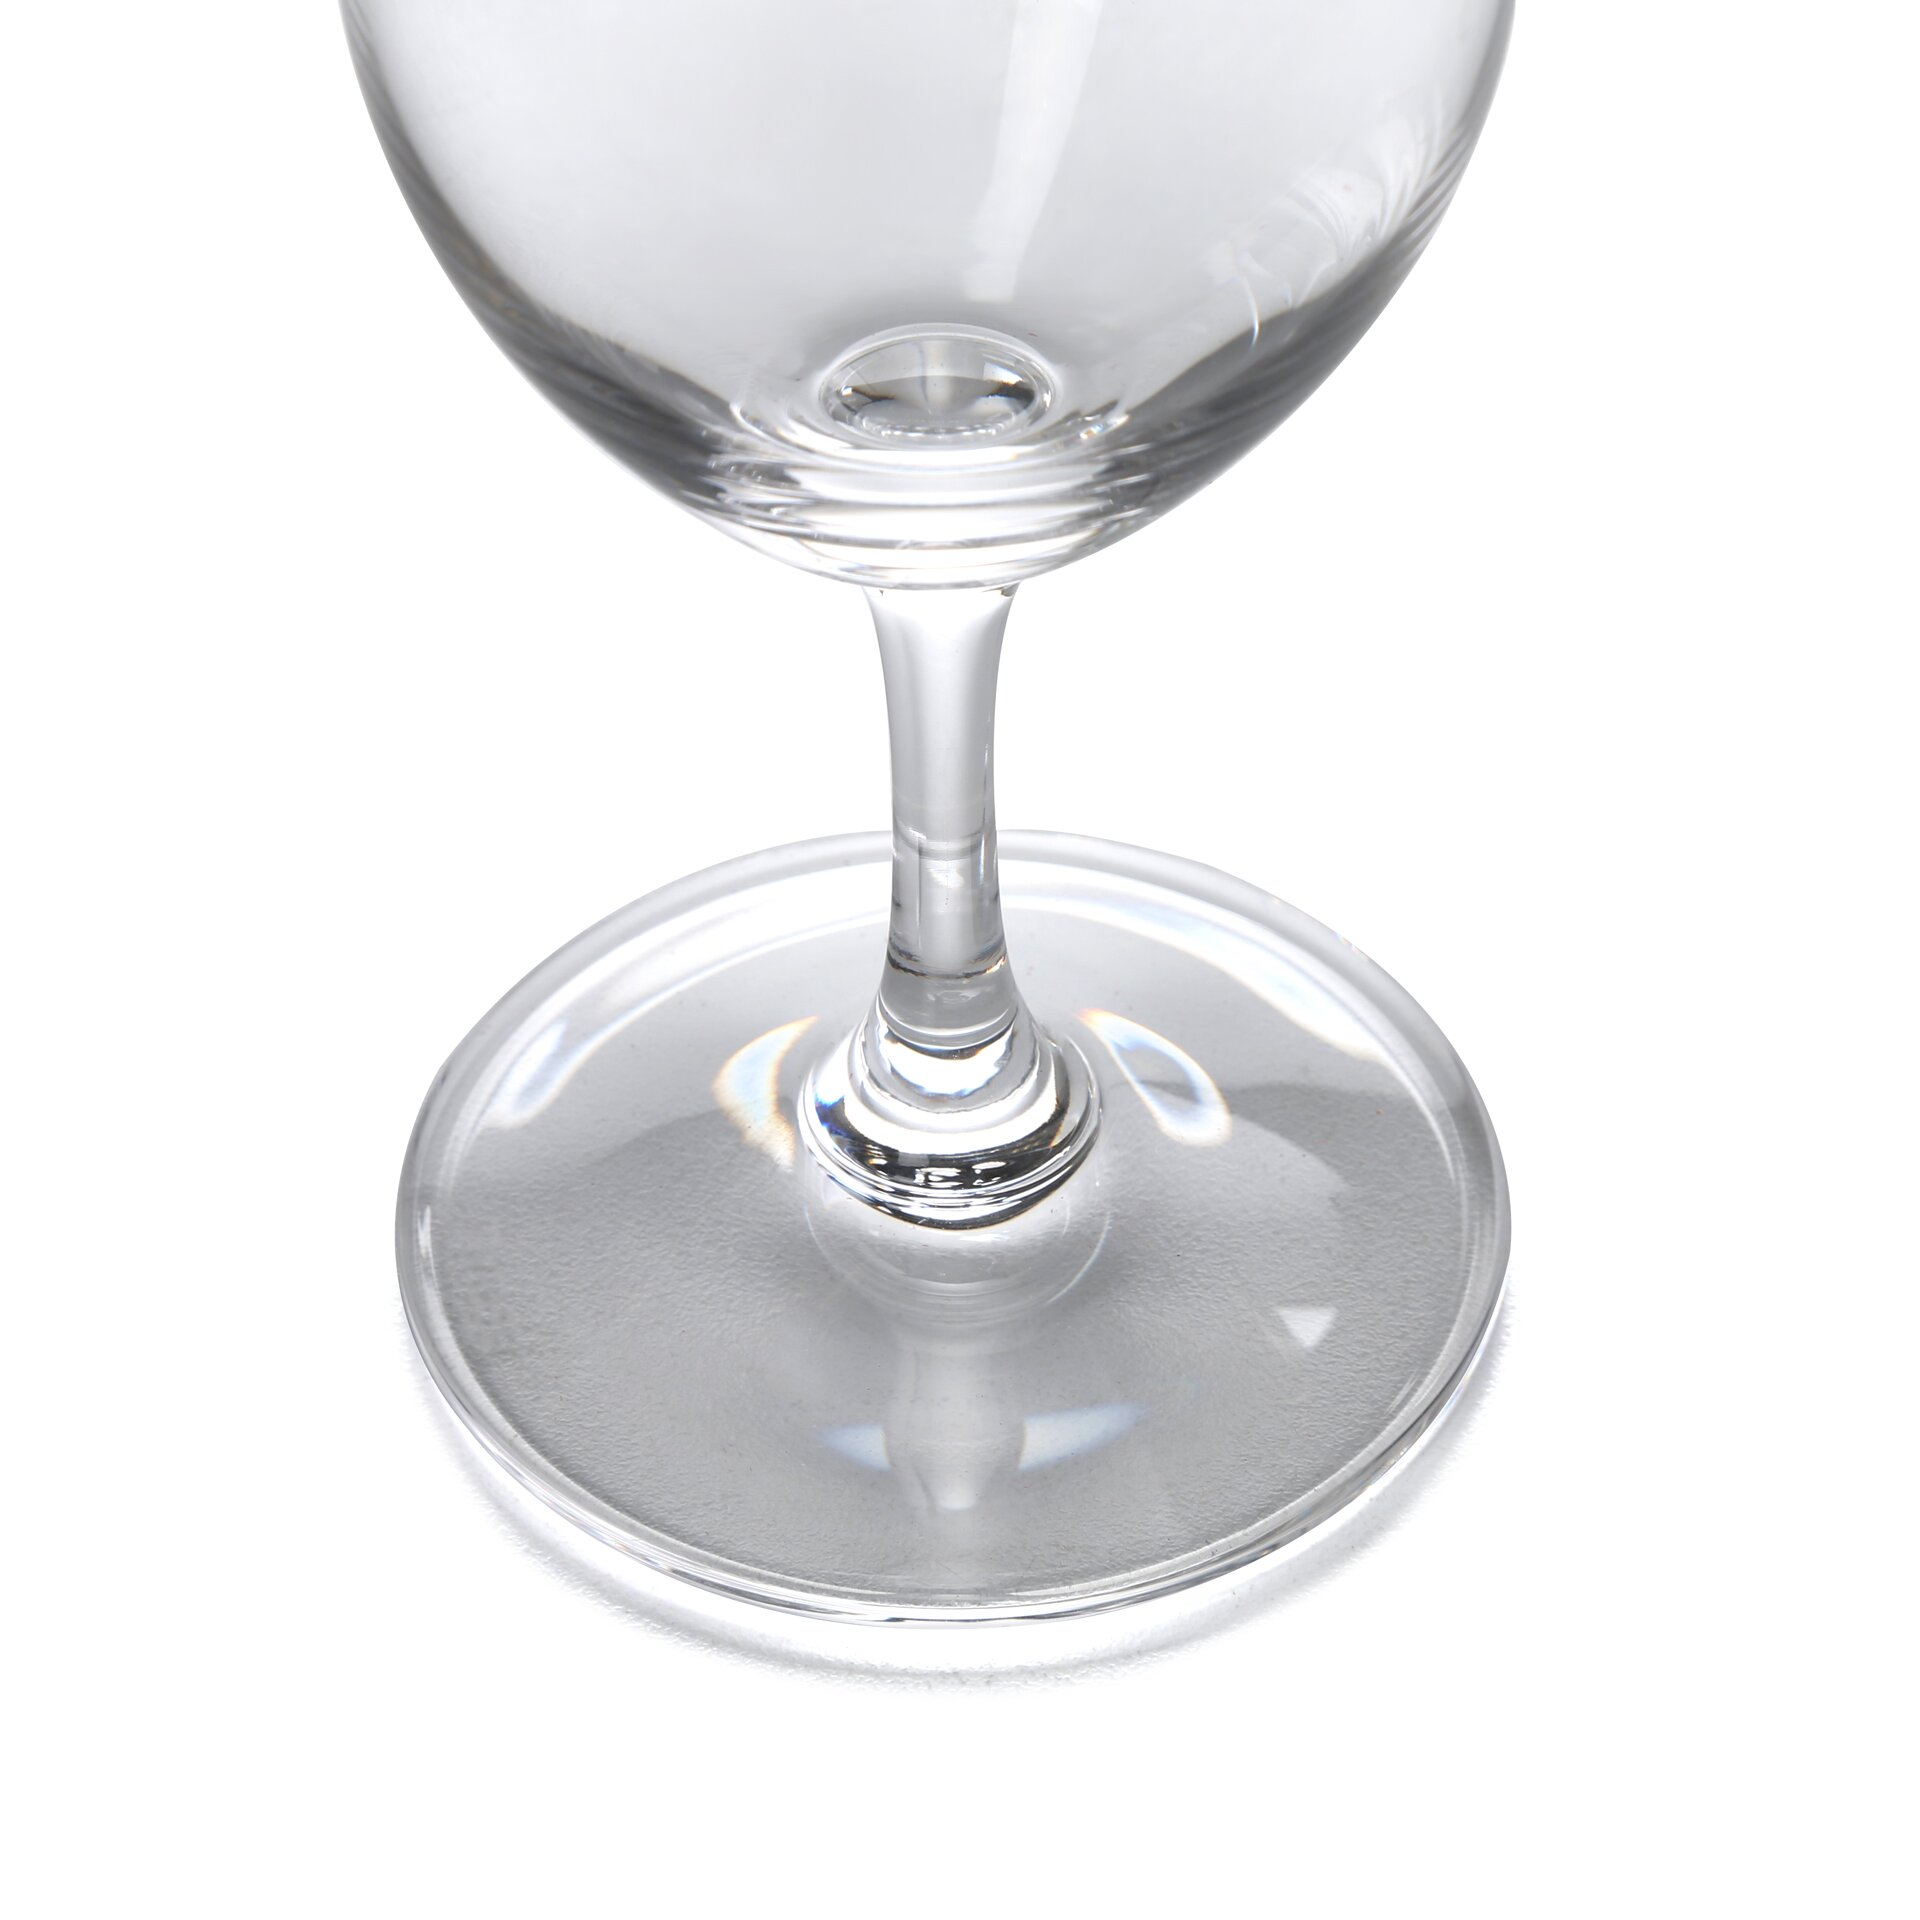 Riedel Vinum Port-Sherry Wine Glass & Reviews | Wayfair